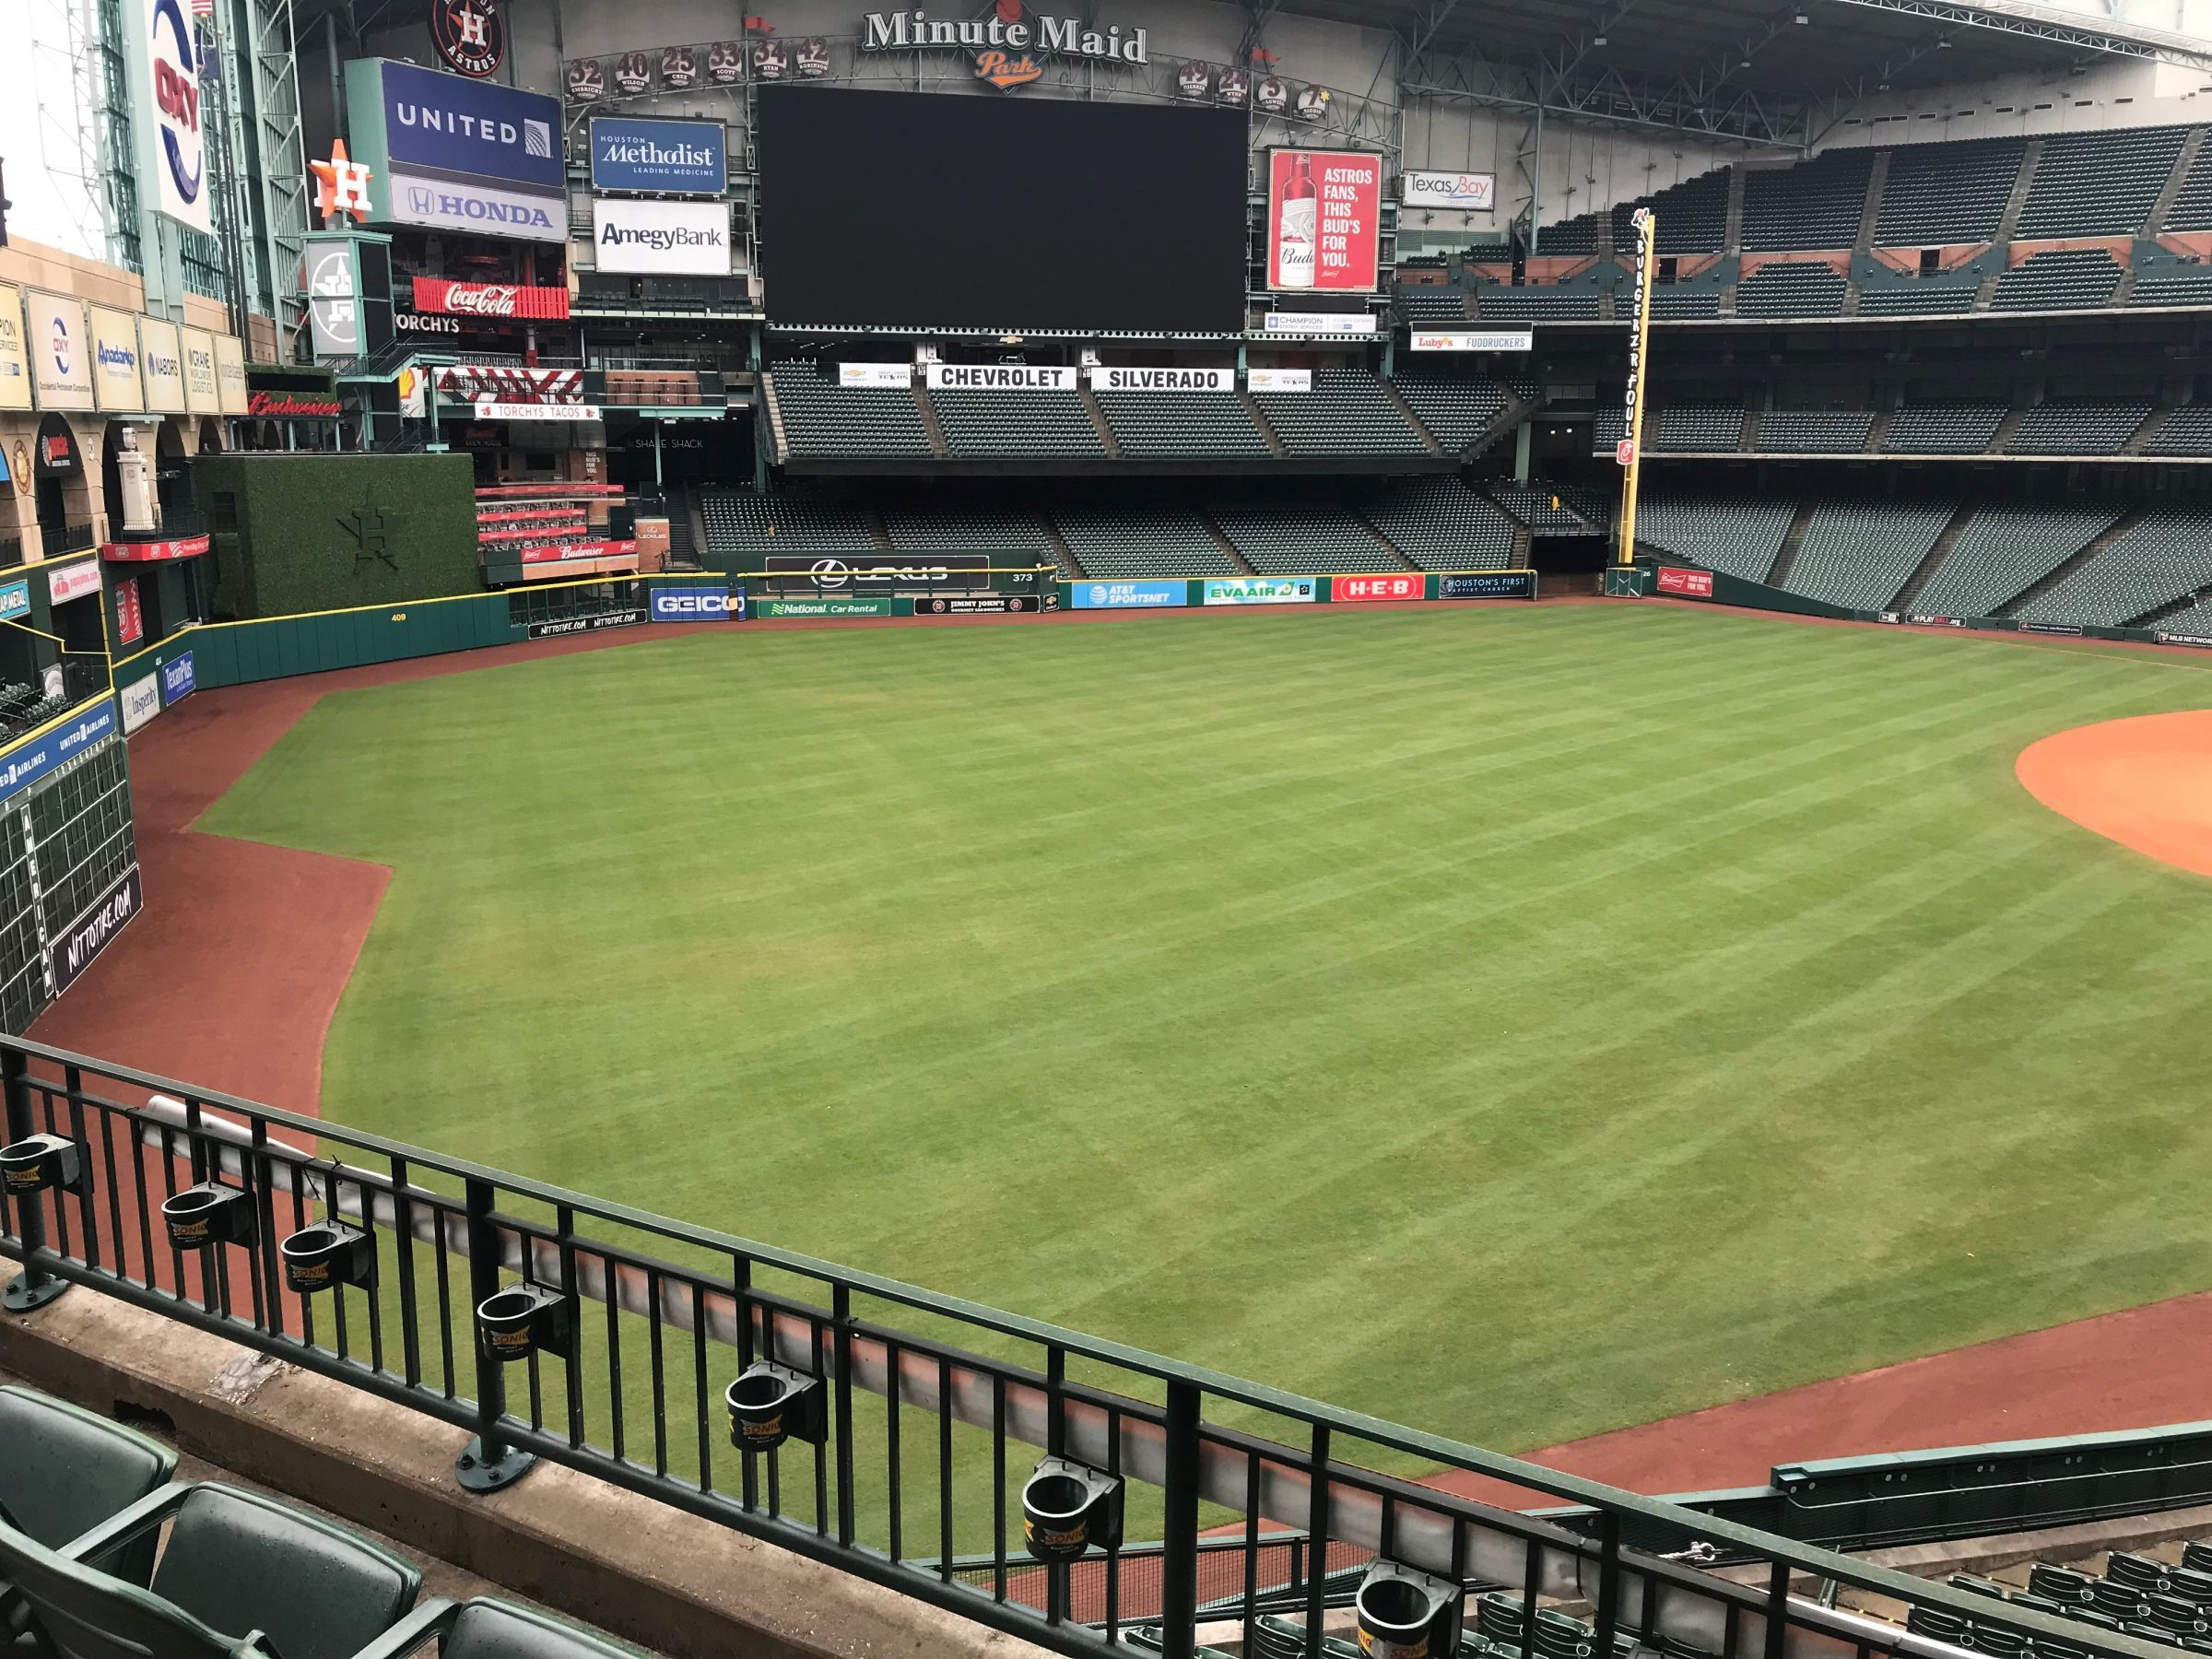 Seat View for Minute Maid Park Section 205, Row 3, Seat 9